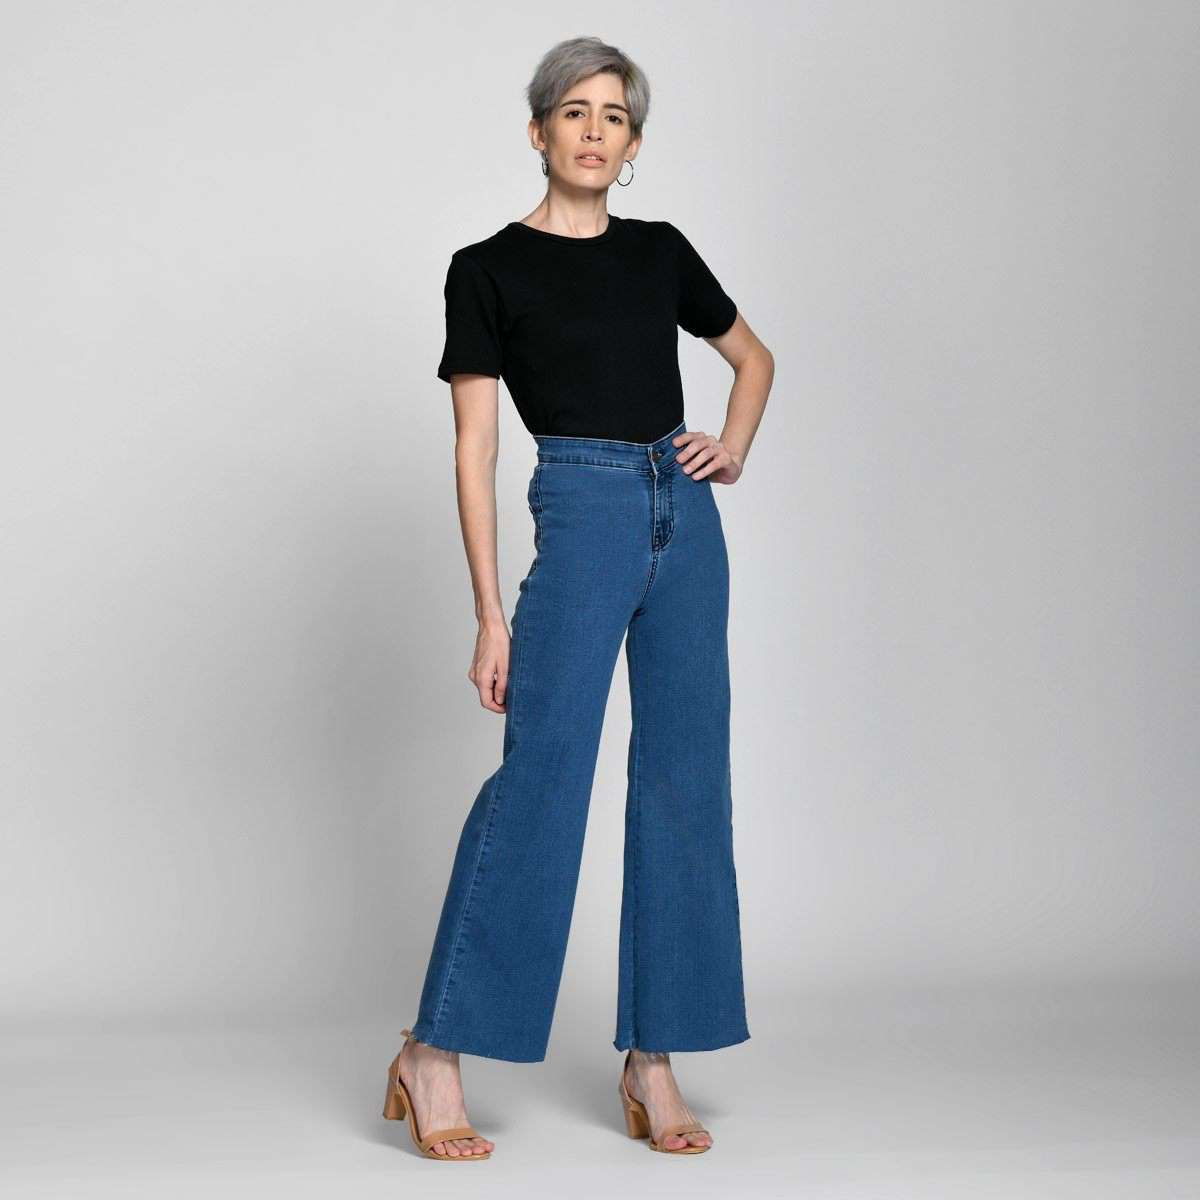 Ankle Crop Wide Leg Mid Blue High Waist Jeans by Madish